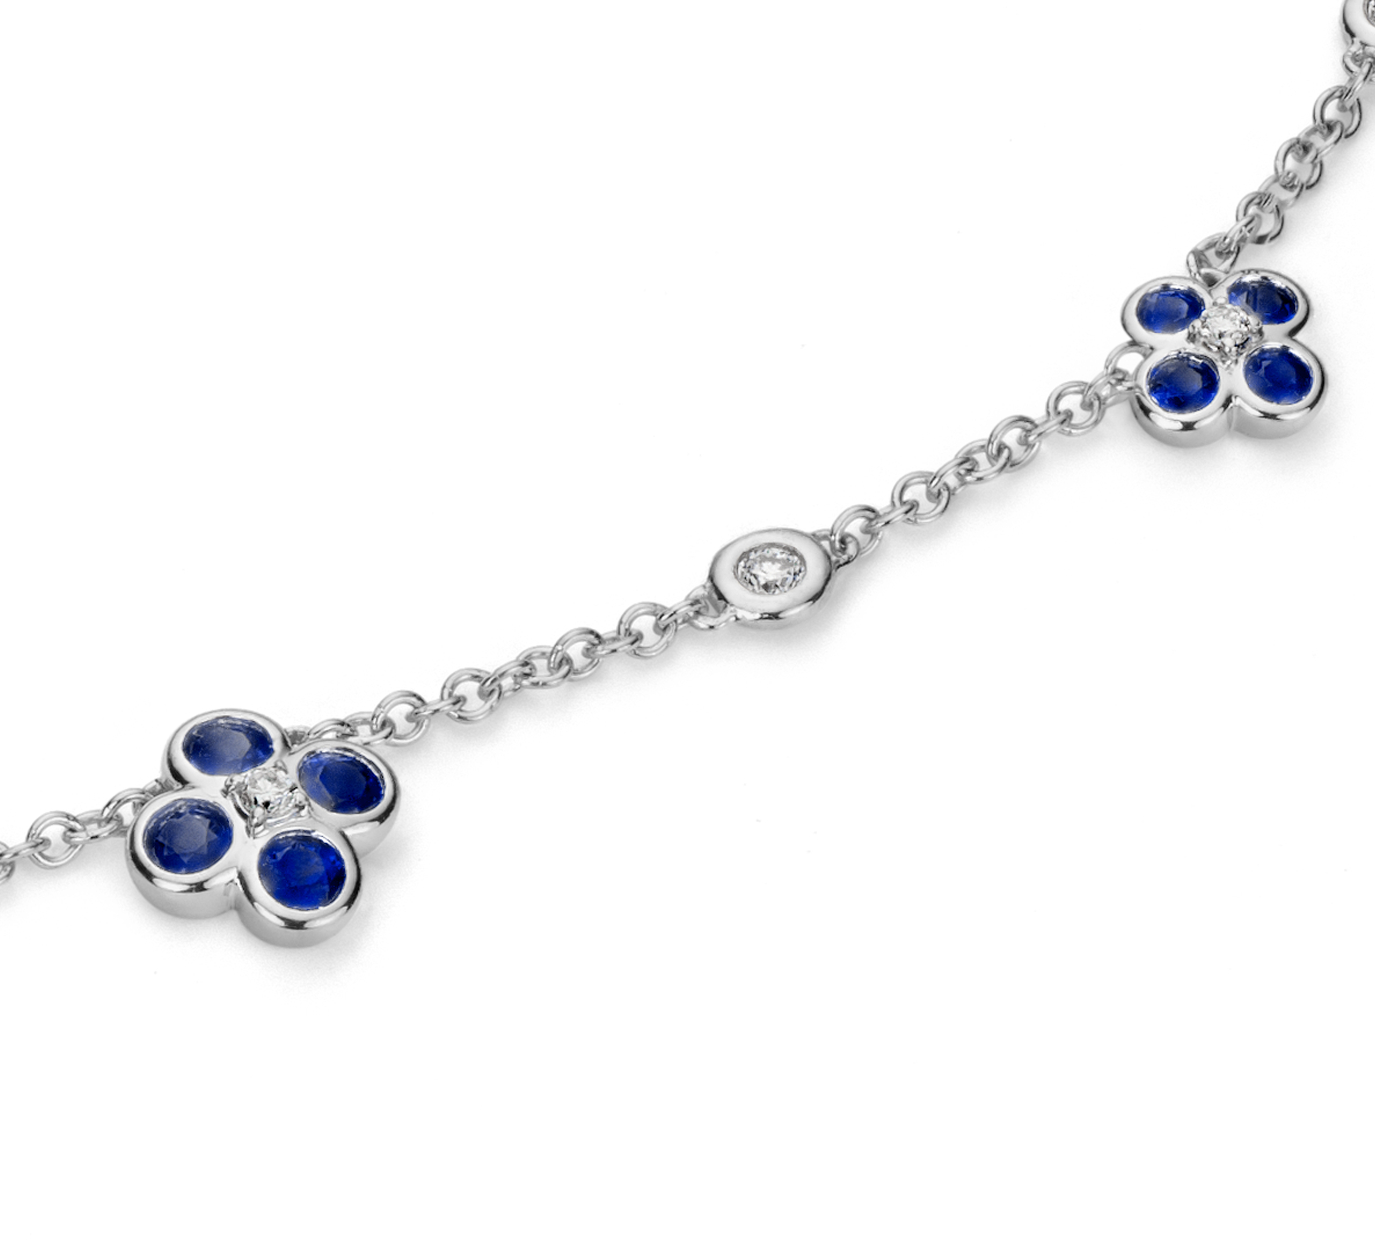 Collar de diamante y zafiro con motivo floral Something Blue de Studio de Blue Nile en oro blanco de 18 k (2 mm)